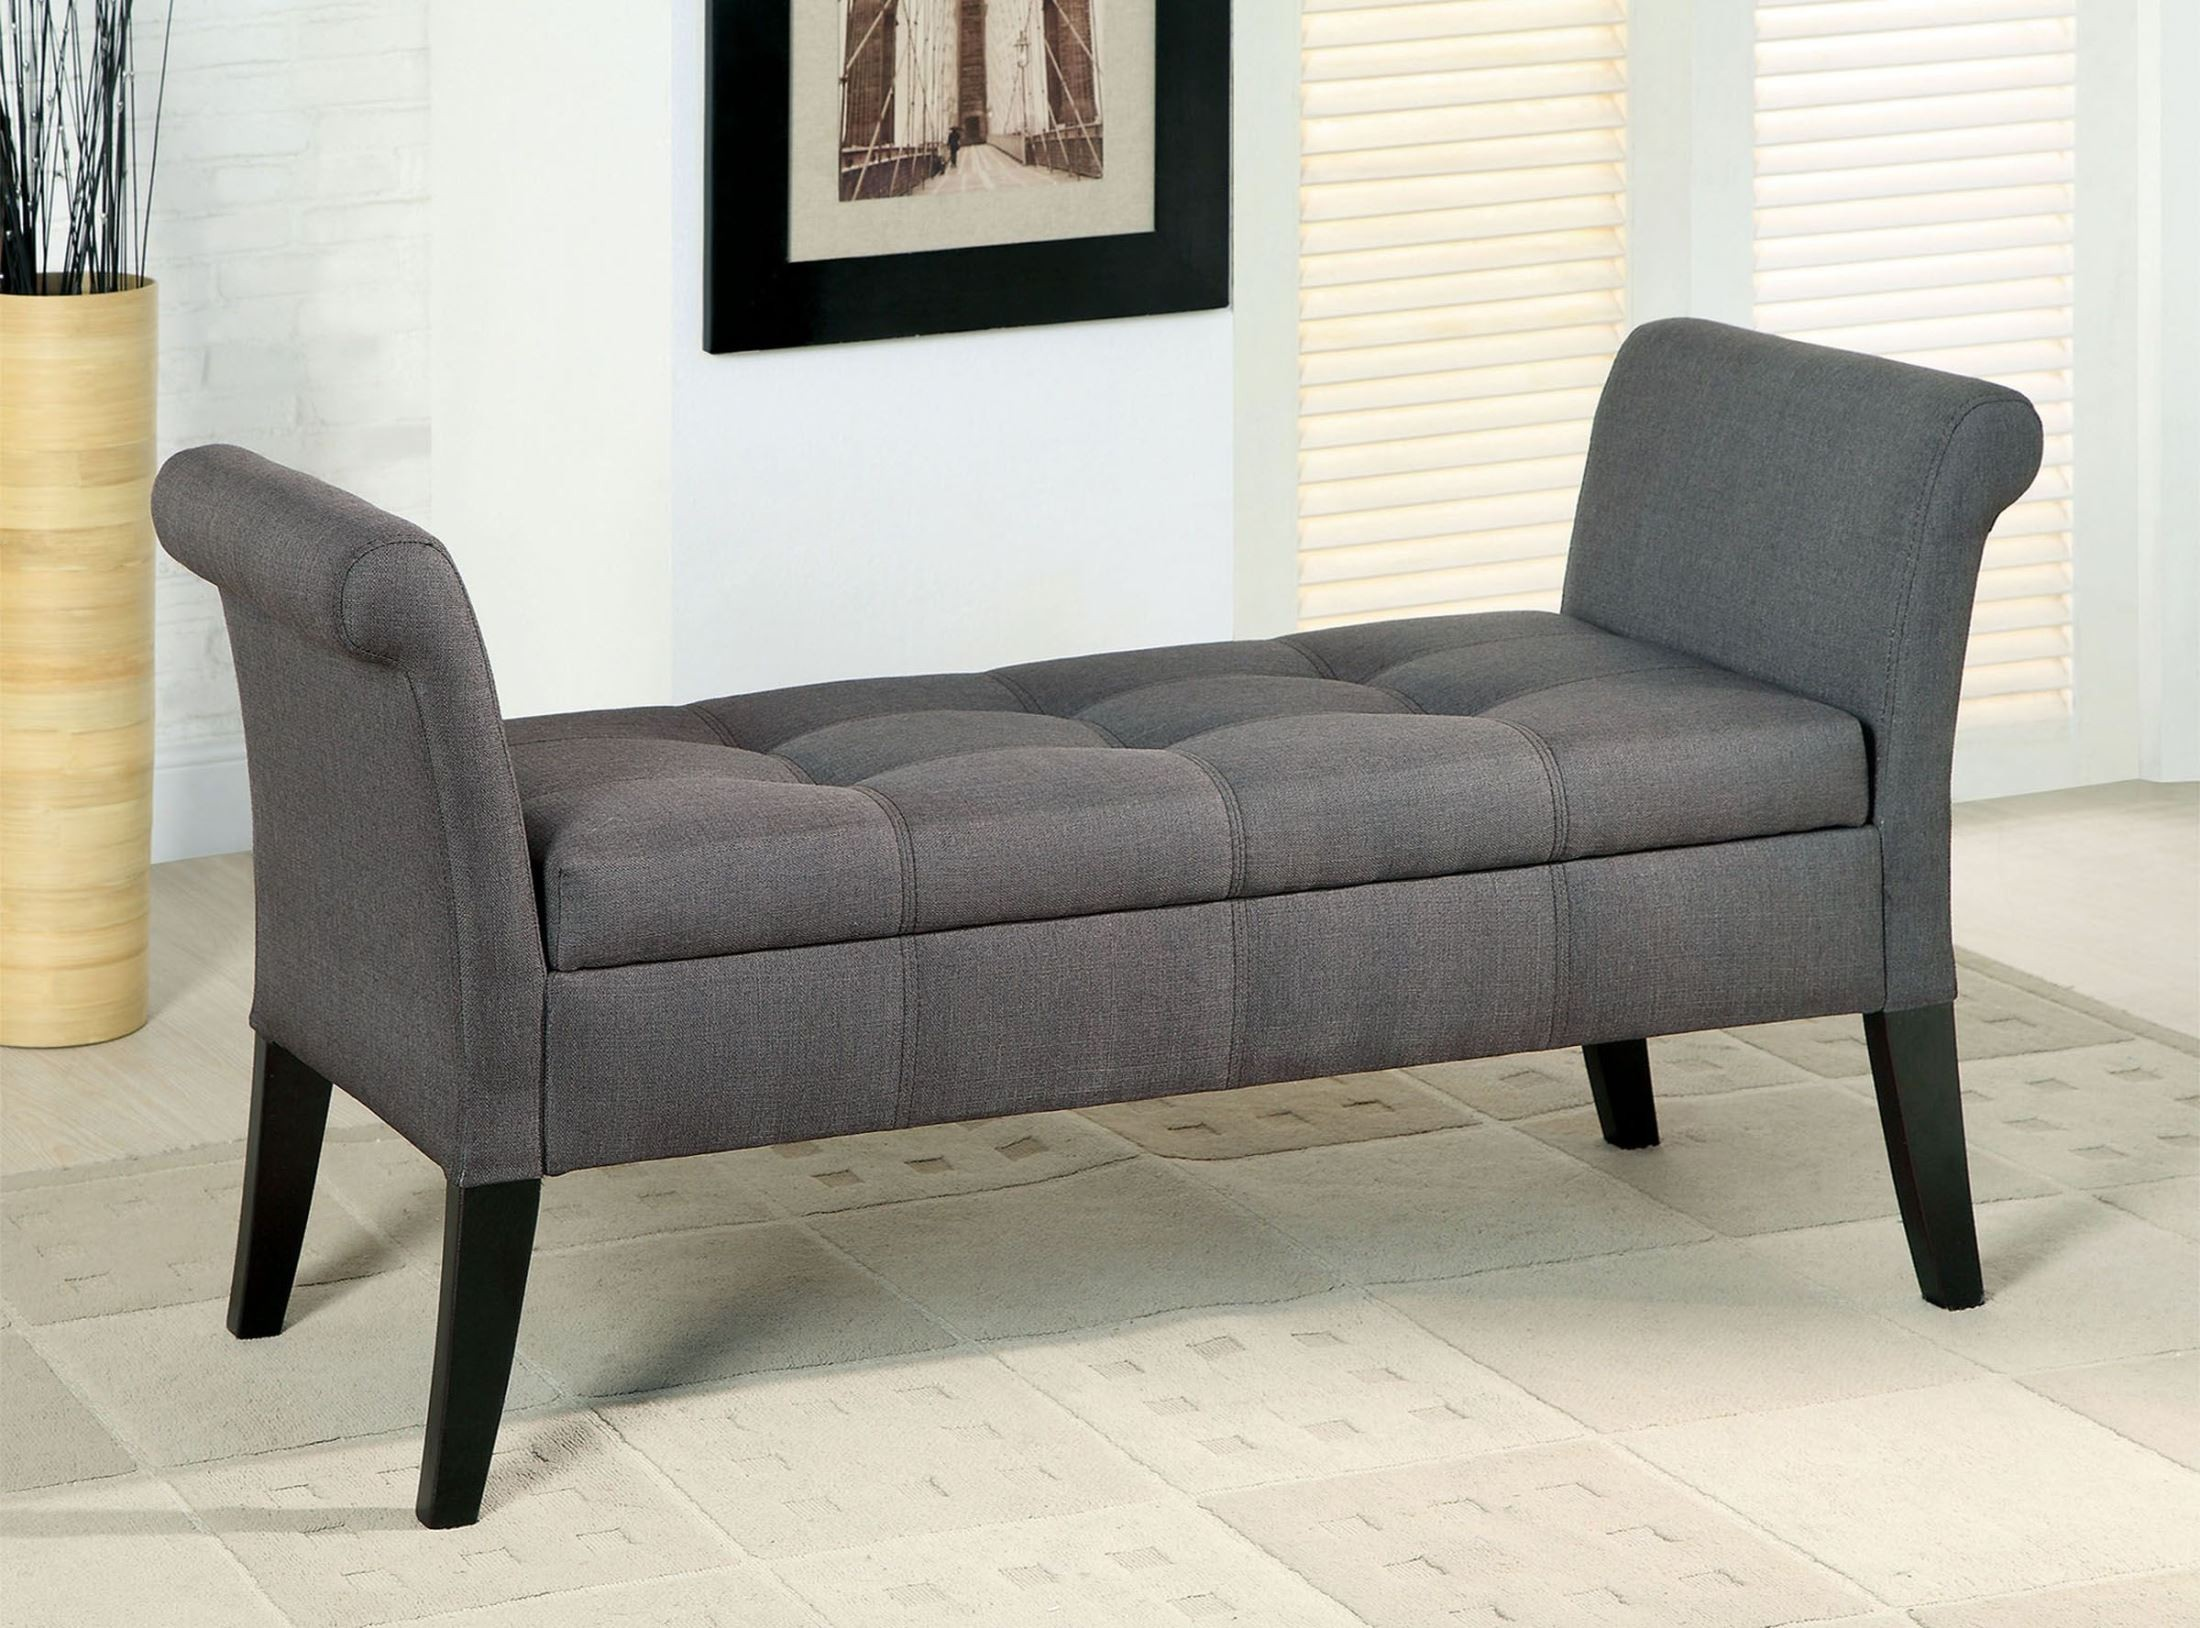 Doheny Gray Fabric Storage Bench From Furniture Of America Cm Bn6190gy Coleman Furniture